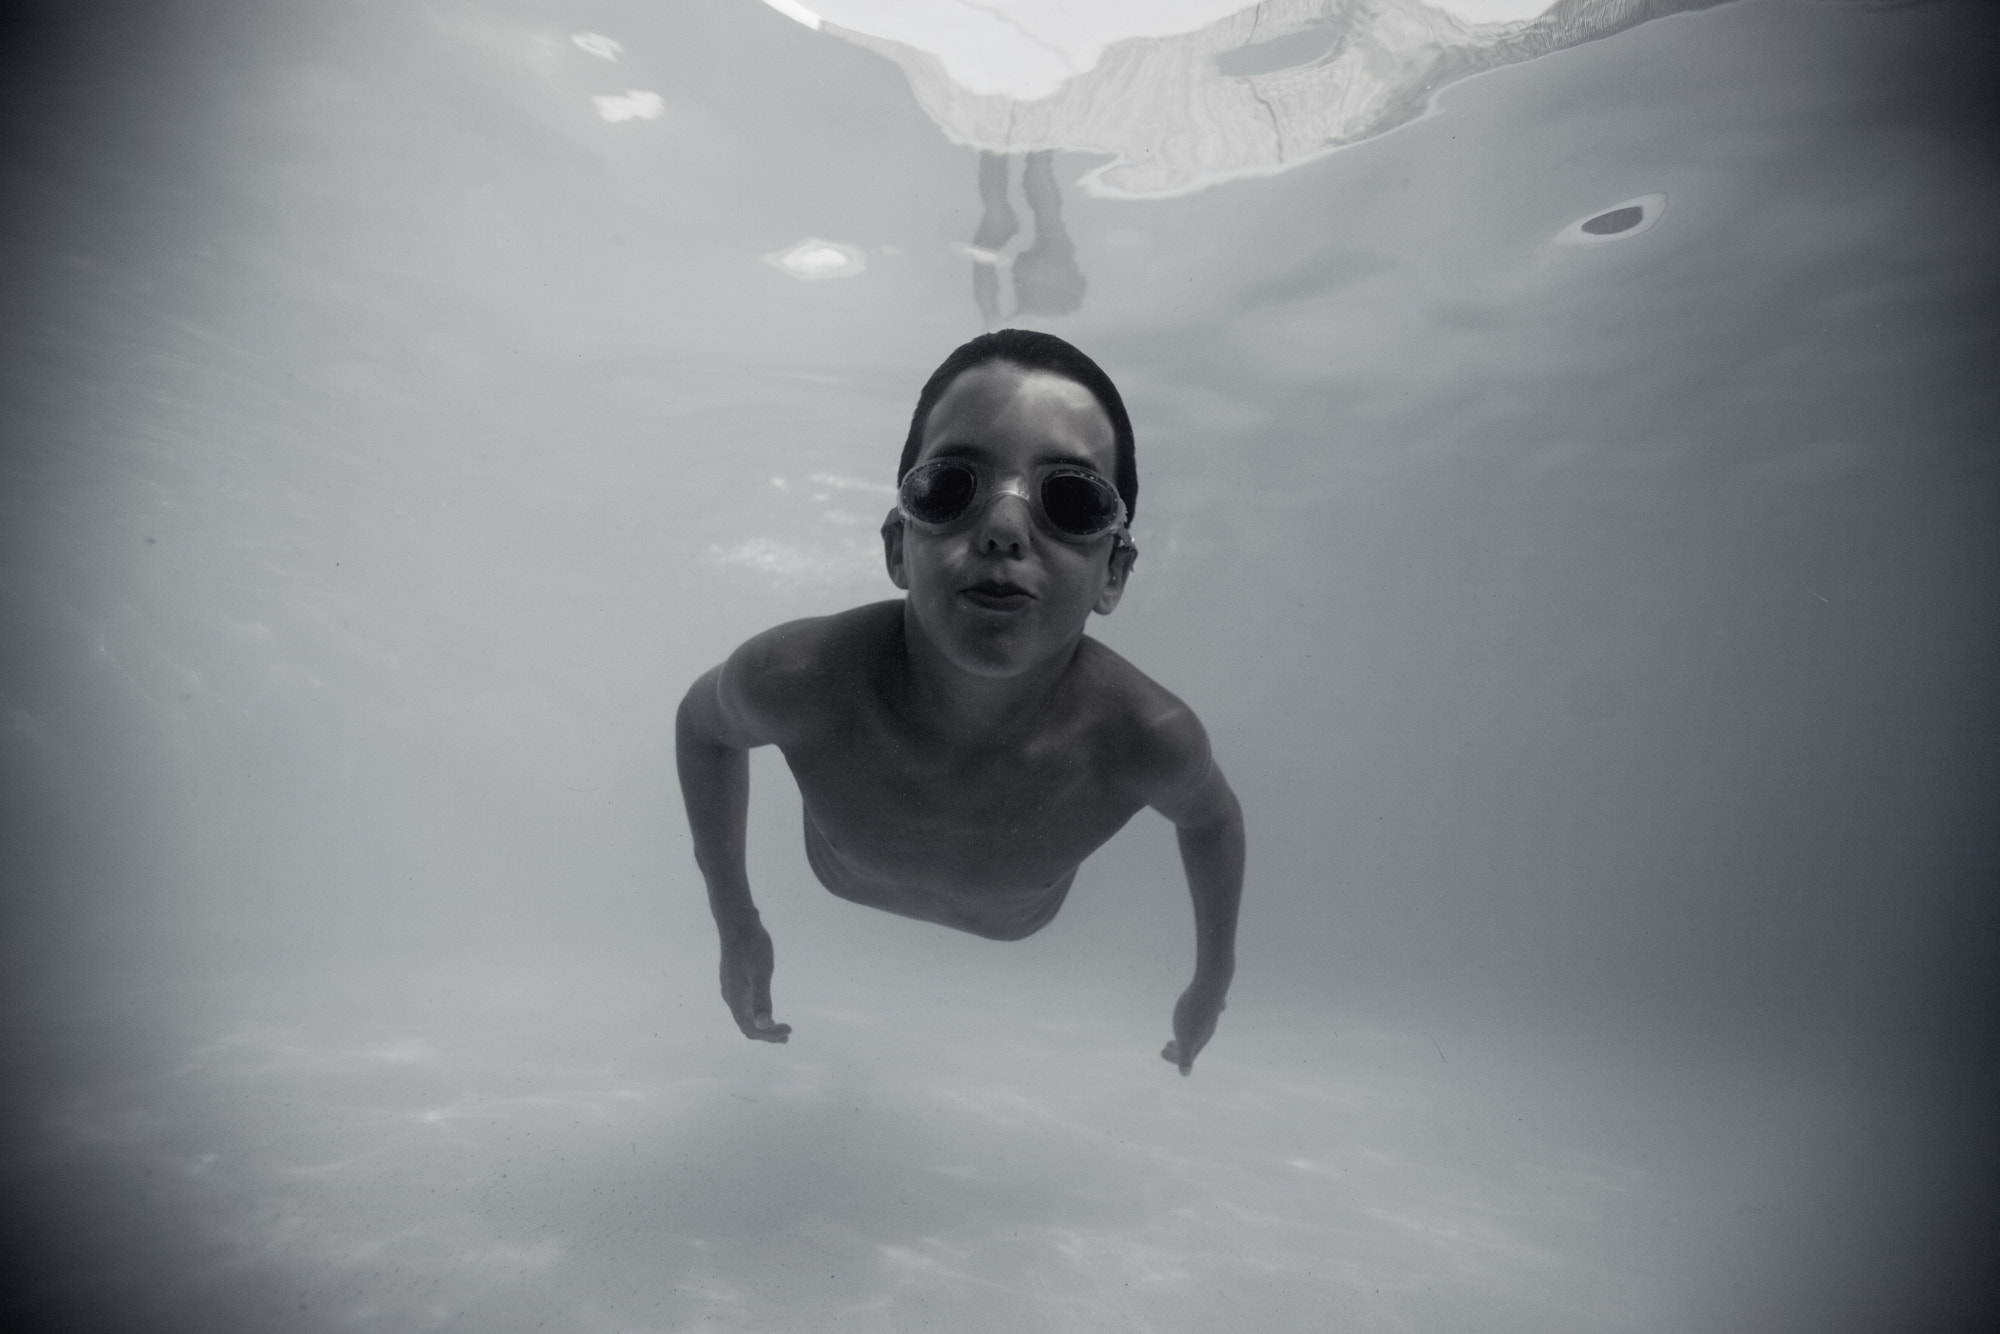 Photograph marc in pool by enric adrian gener on 500px